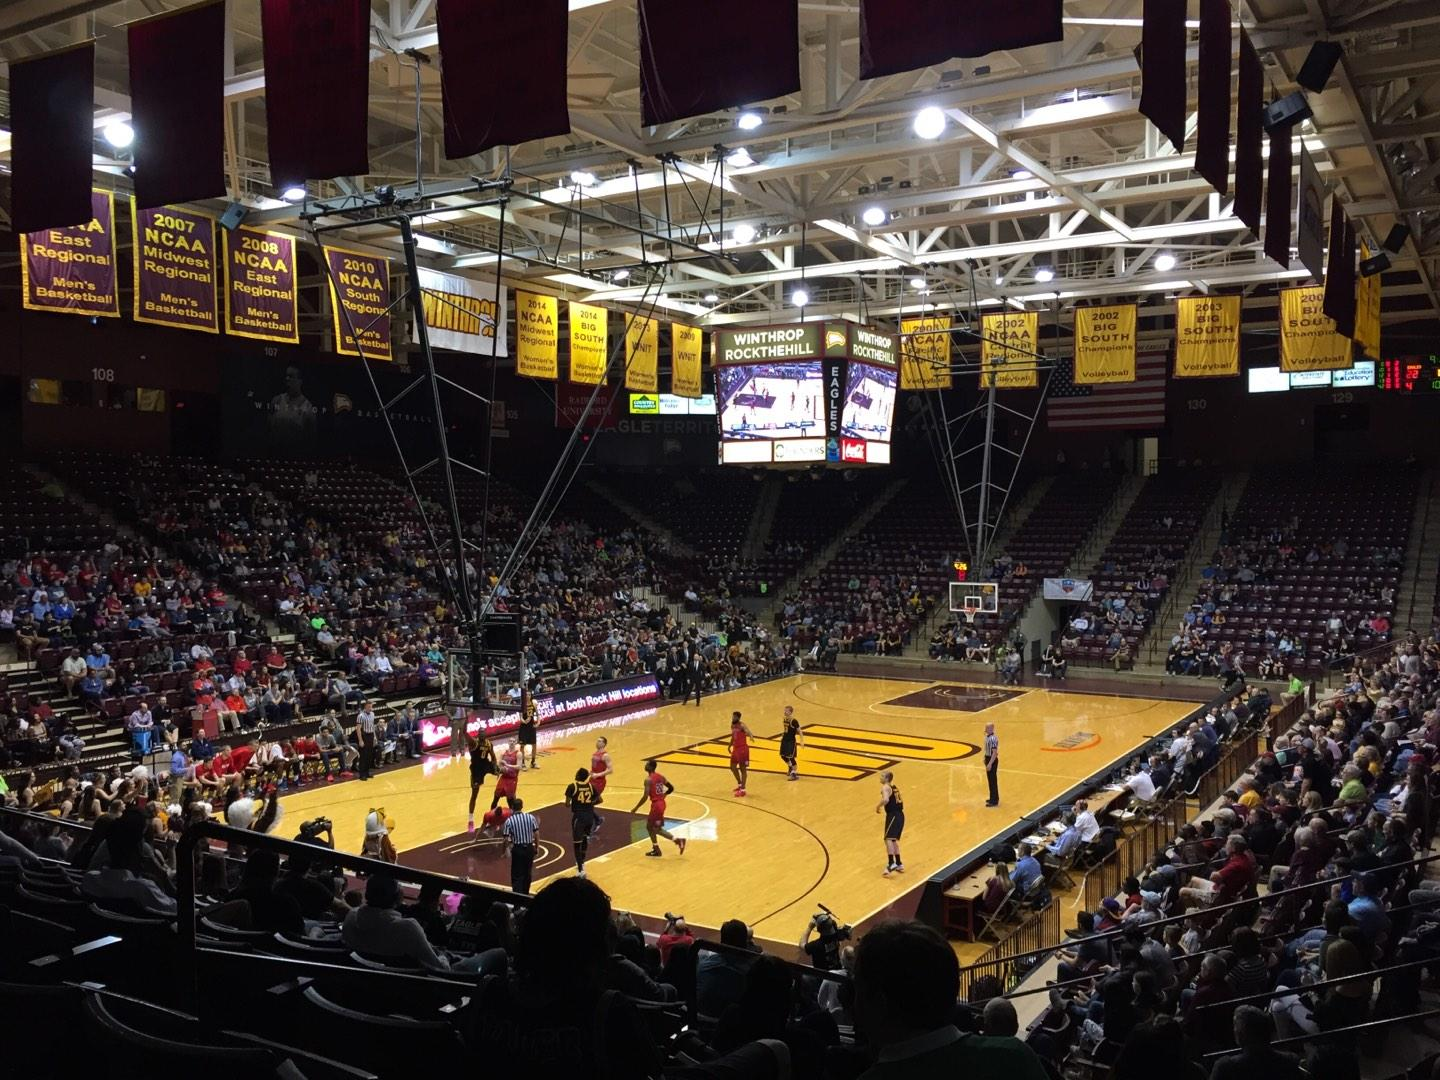 Winthrop Coliseum Section 118 Row P Seat 9